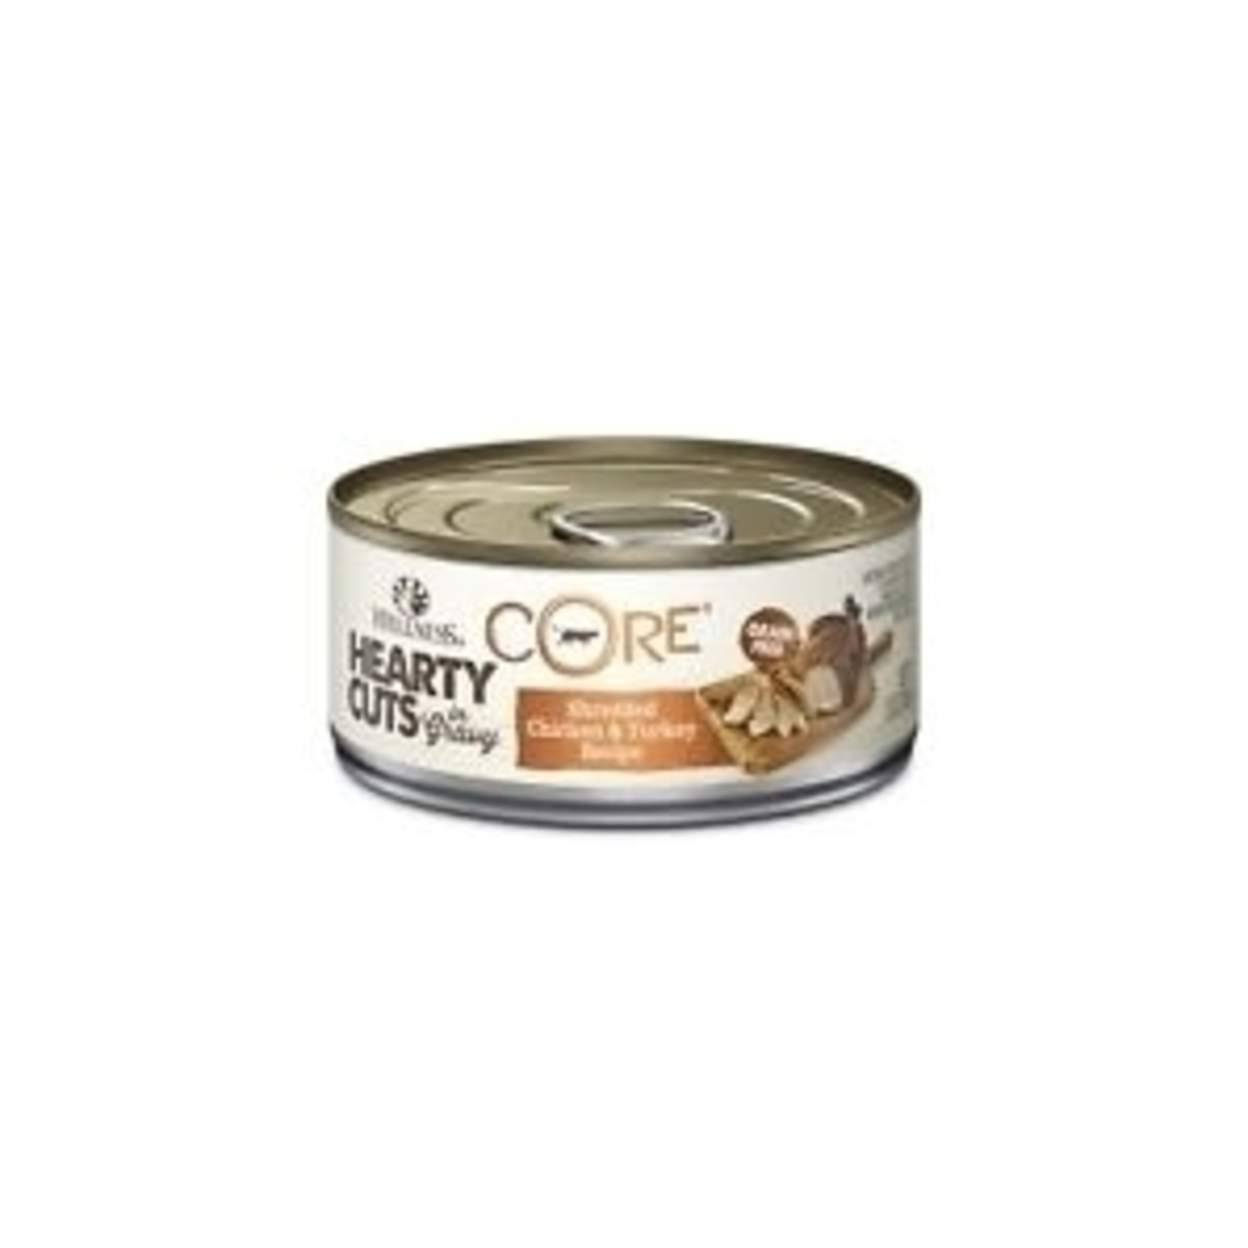 Wellness CORE Hearty Cuts Natural Canned Grain Free Wet Cat Food - Chicken & Turkey, 5.5 Oz